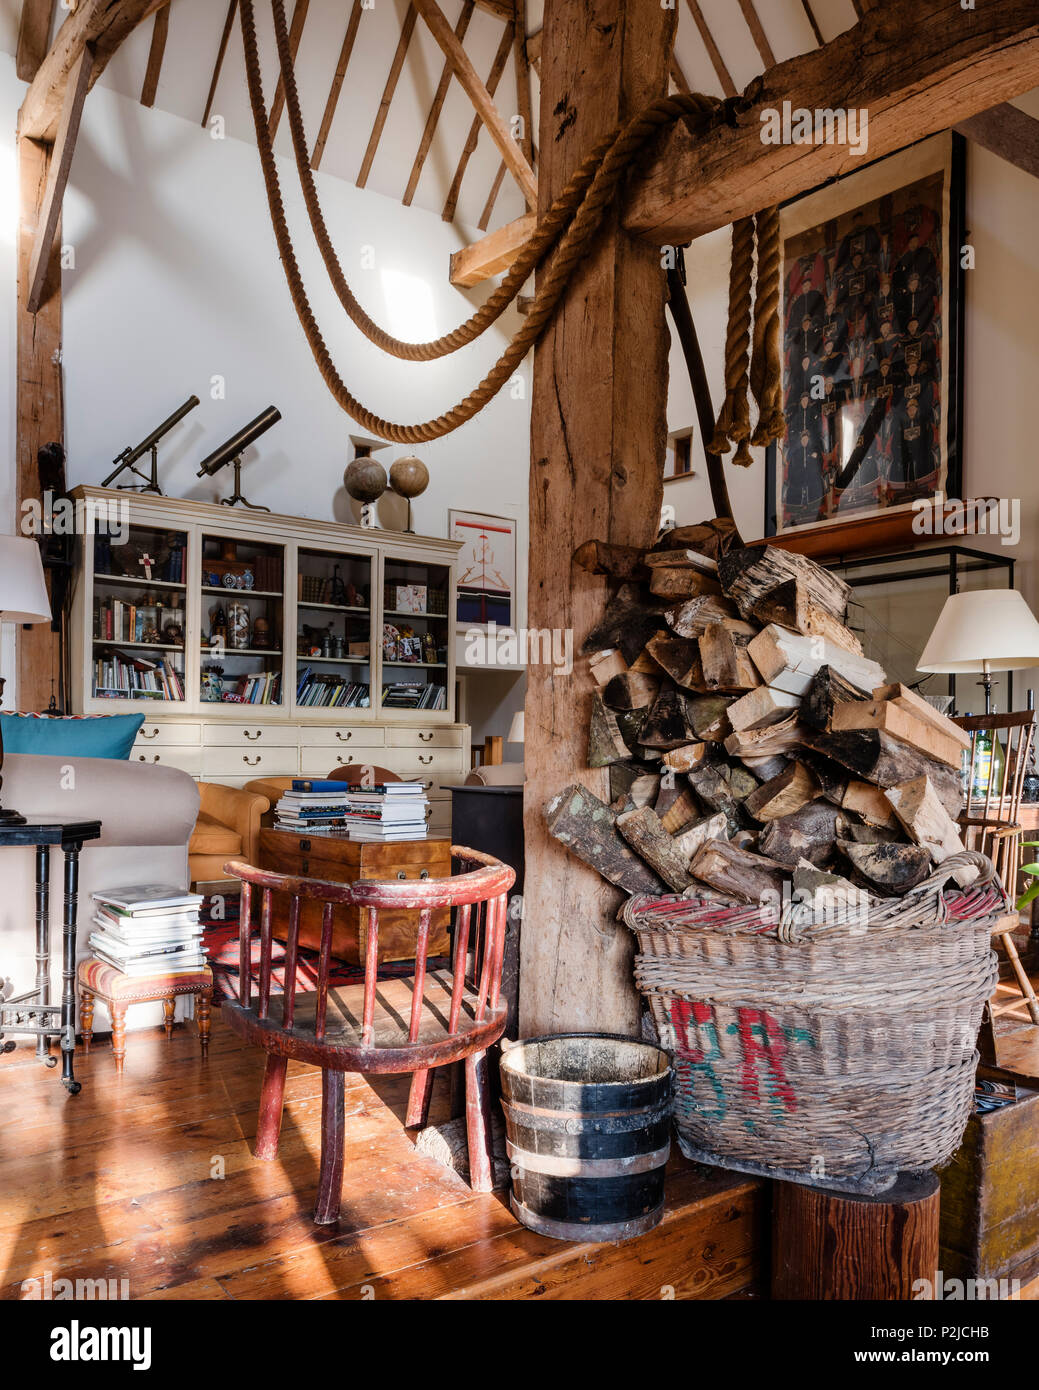 Ship ropes with firewood in log basket in Sussex barn conversion - Stock Image